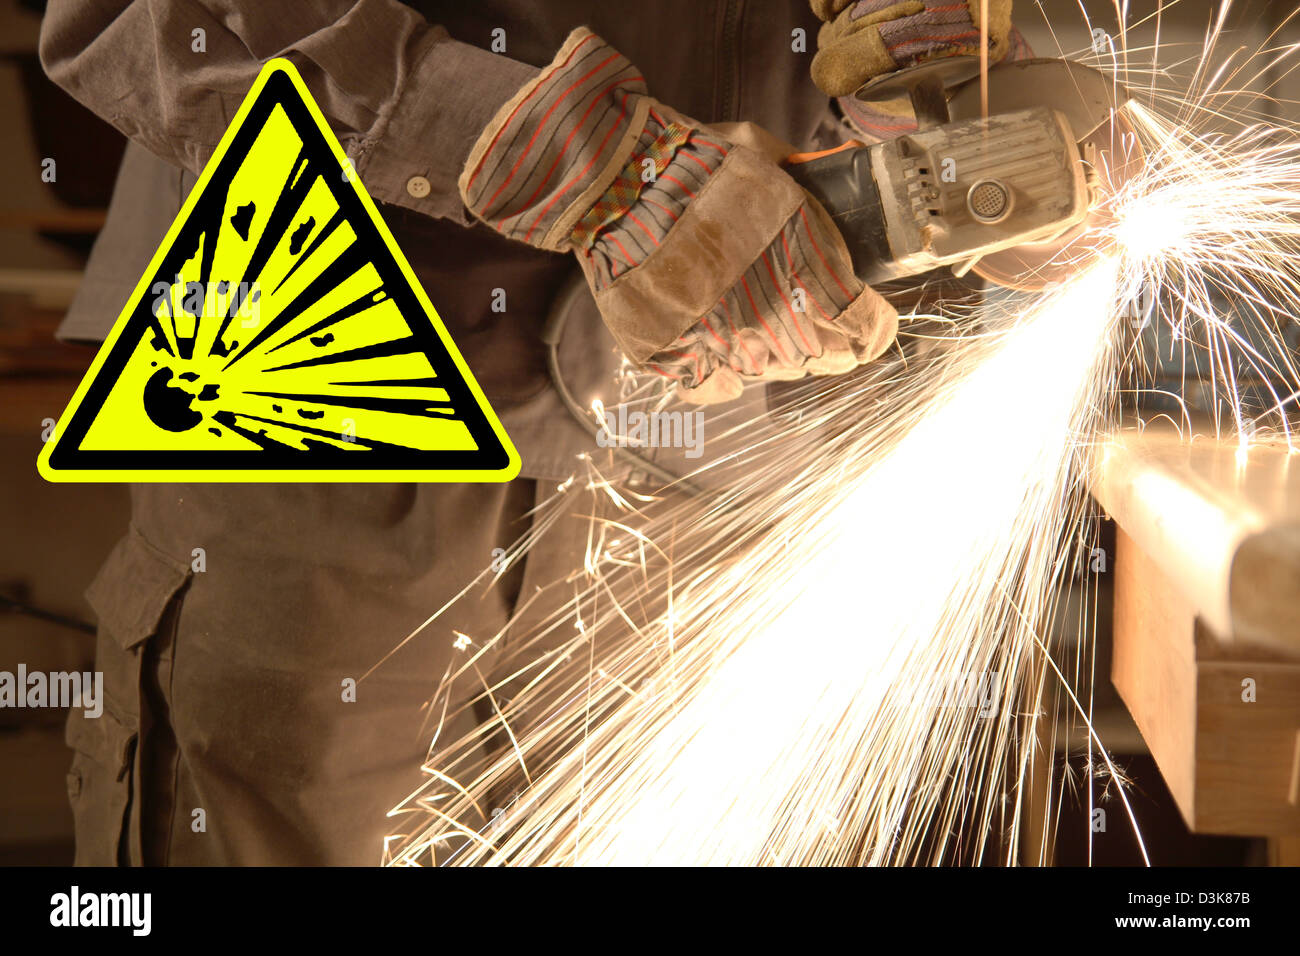 Hands of a worker with angle grinder, sparks and sign - Stock Image